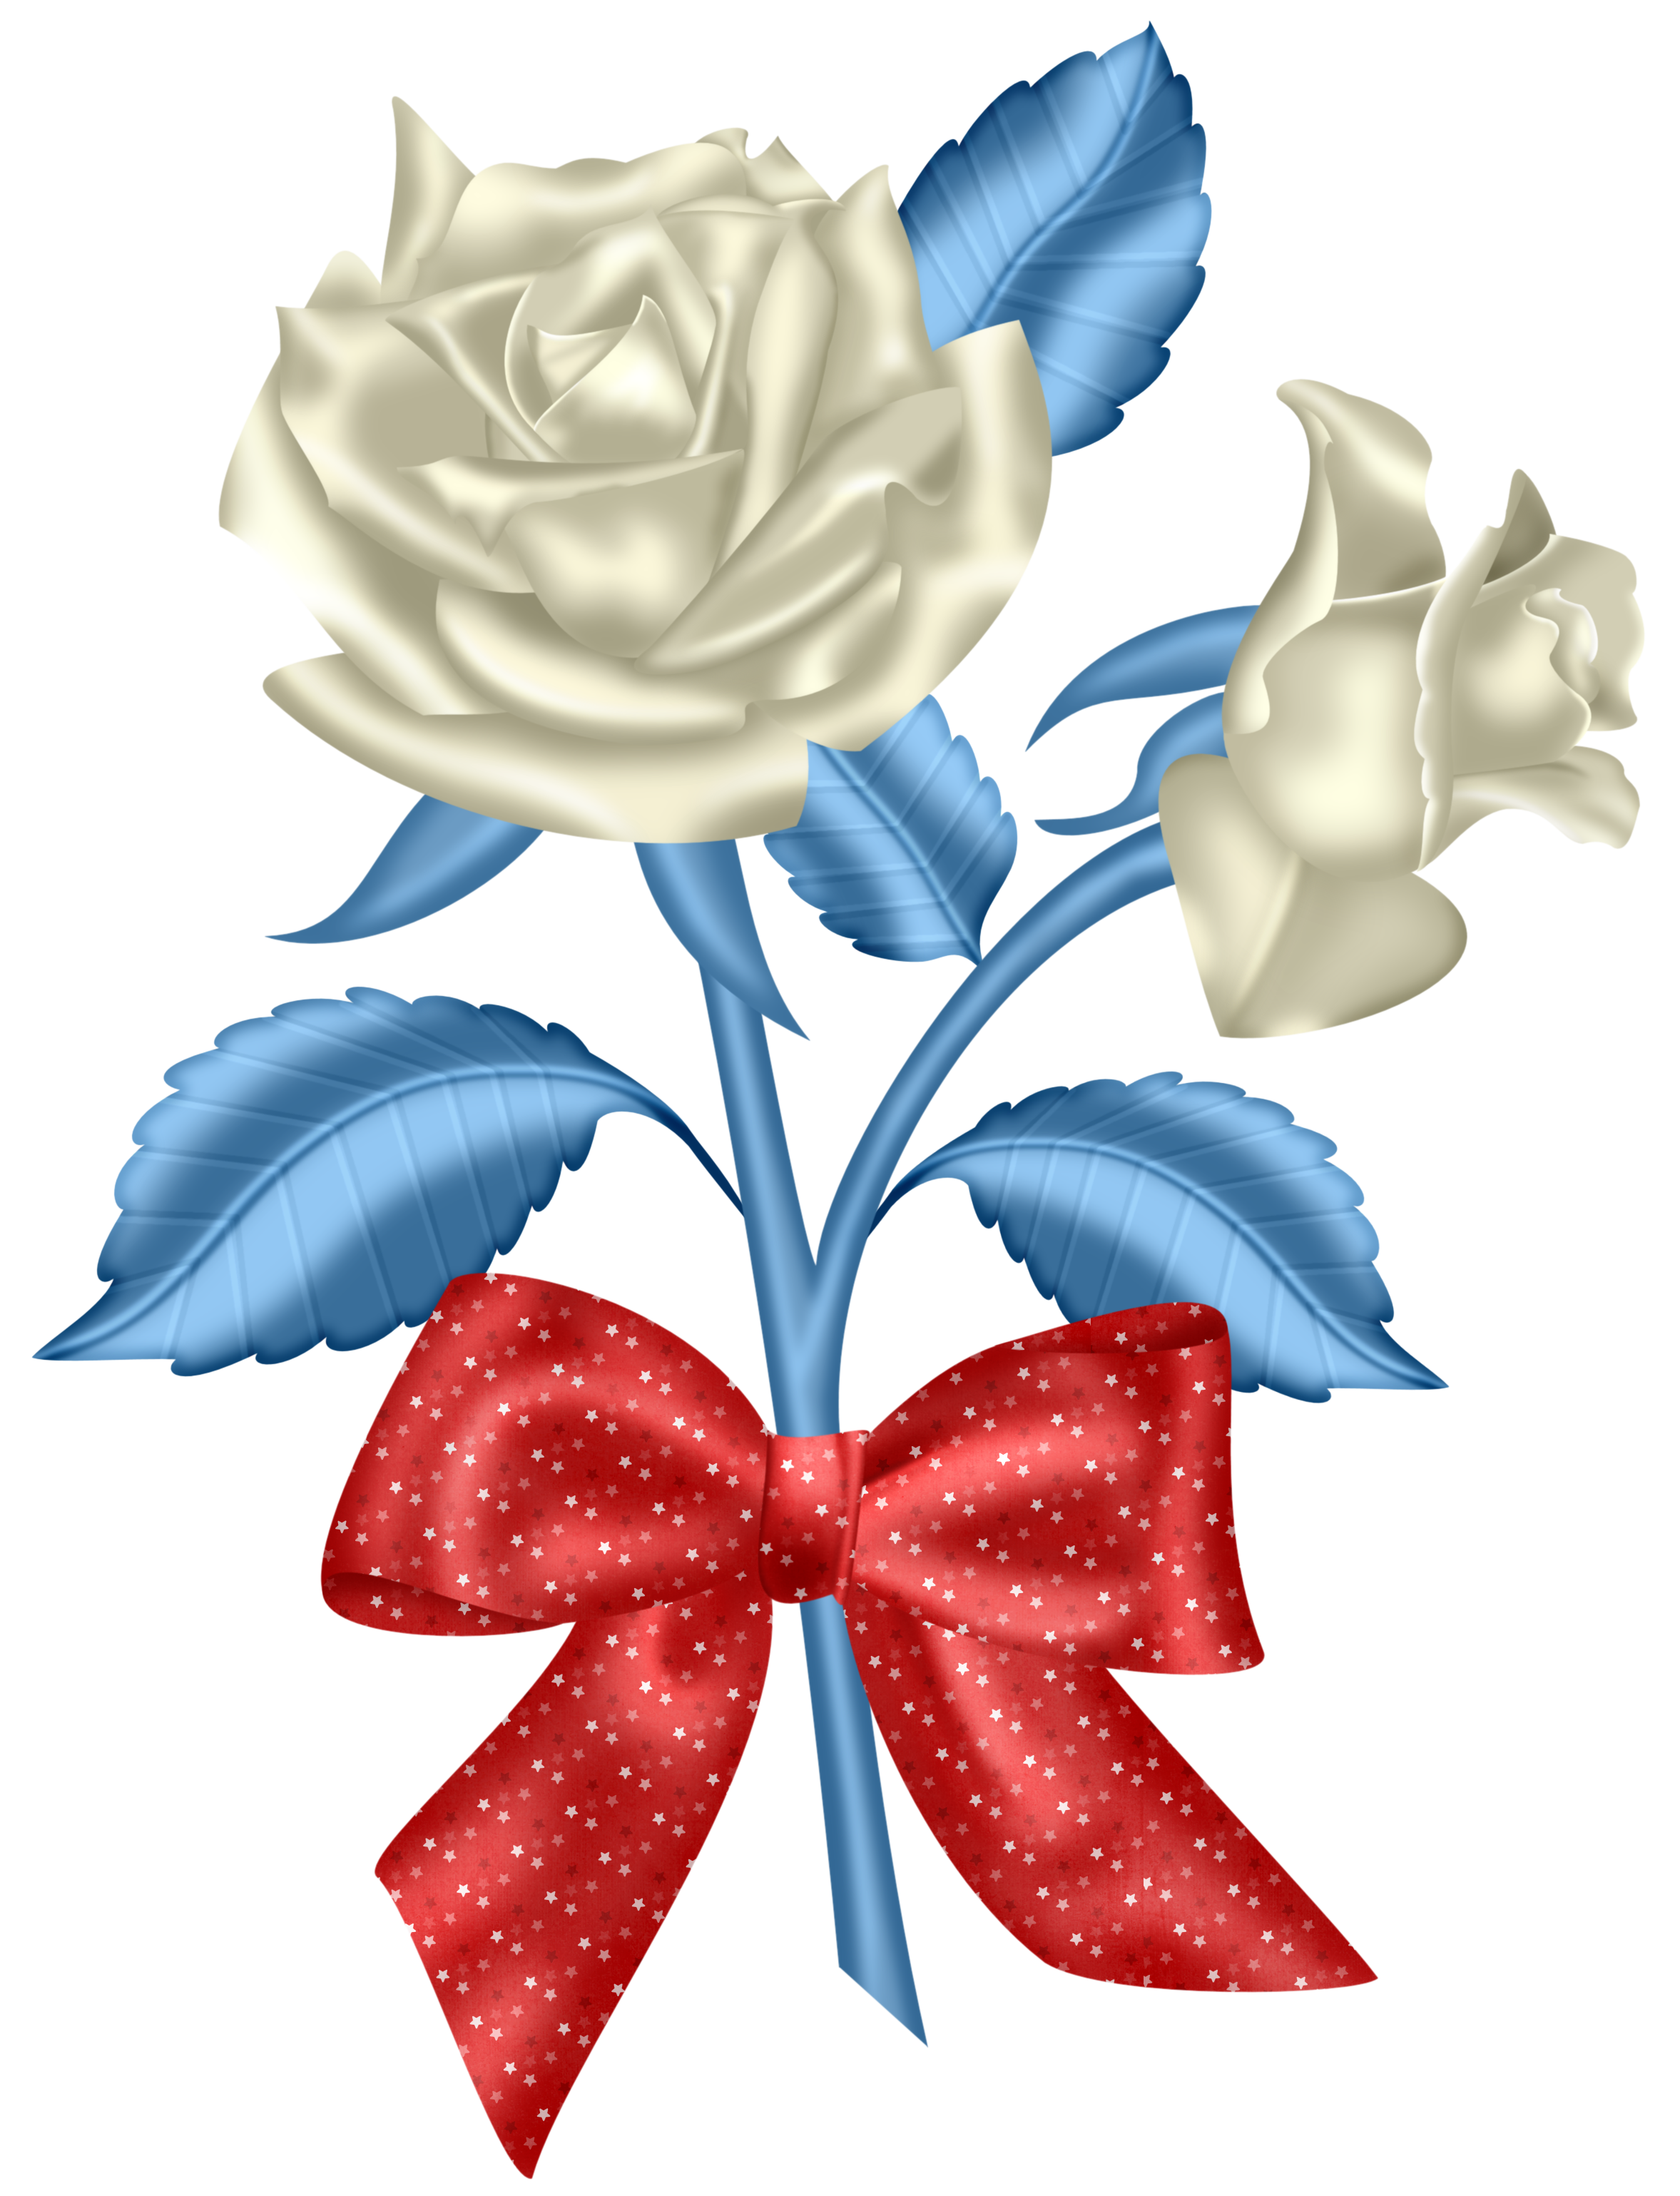 Whimsical flower clipart jpg library library Red White & Blue | Whimsical [1] | Pinterest | Red white blue jpg library library